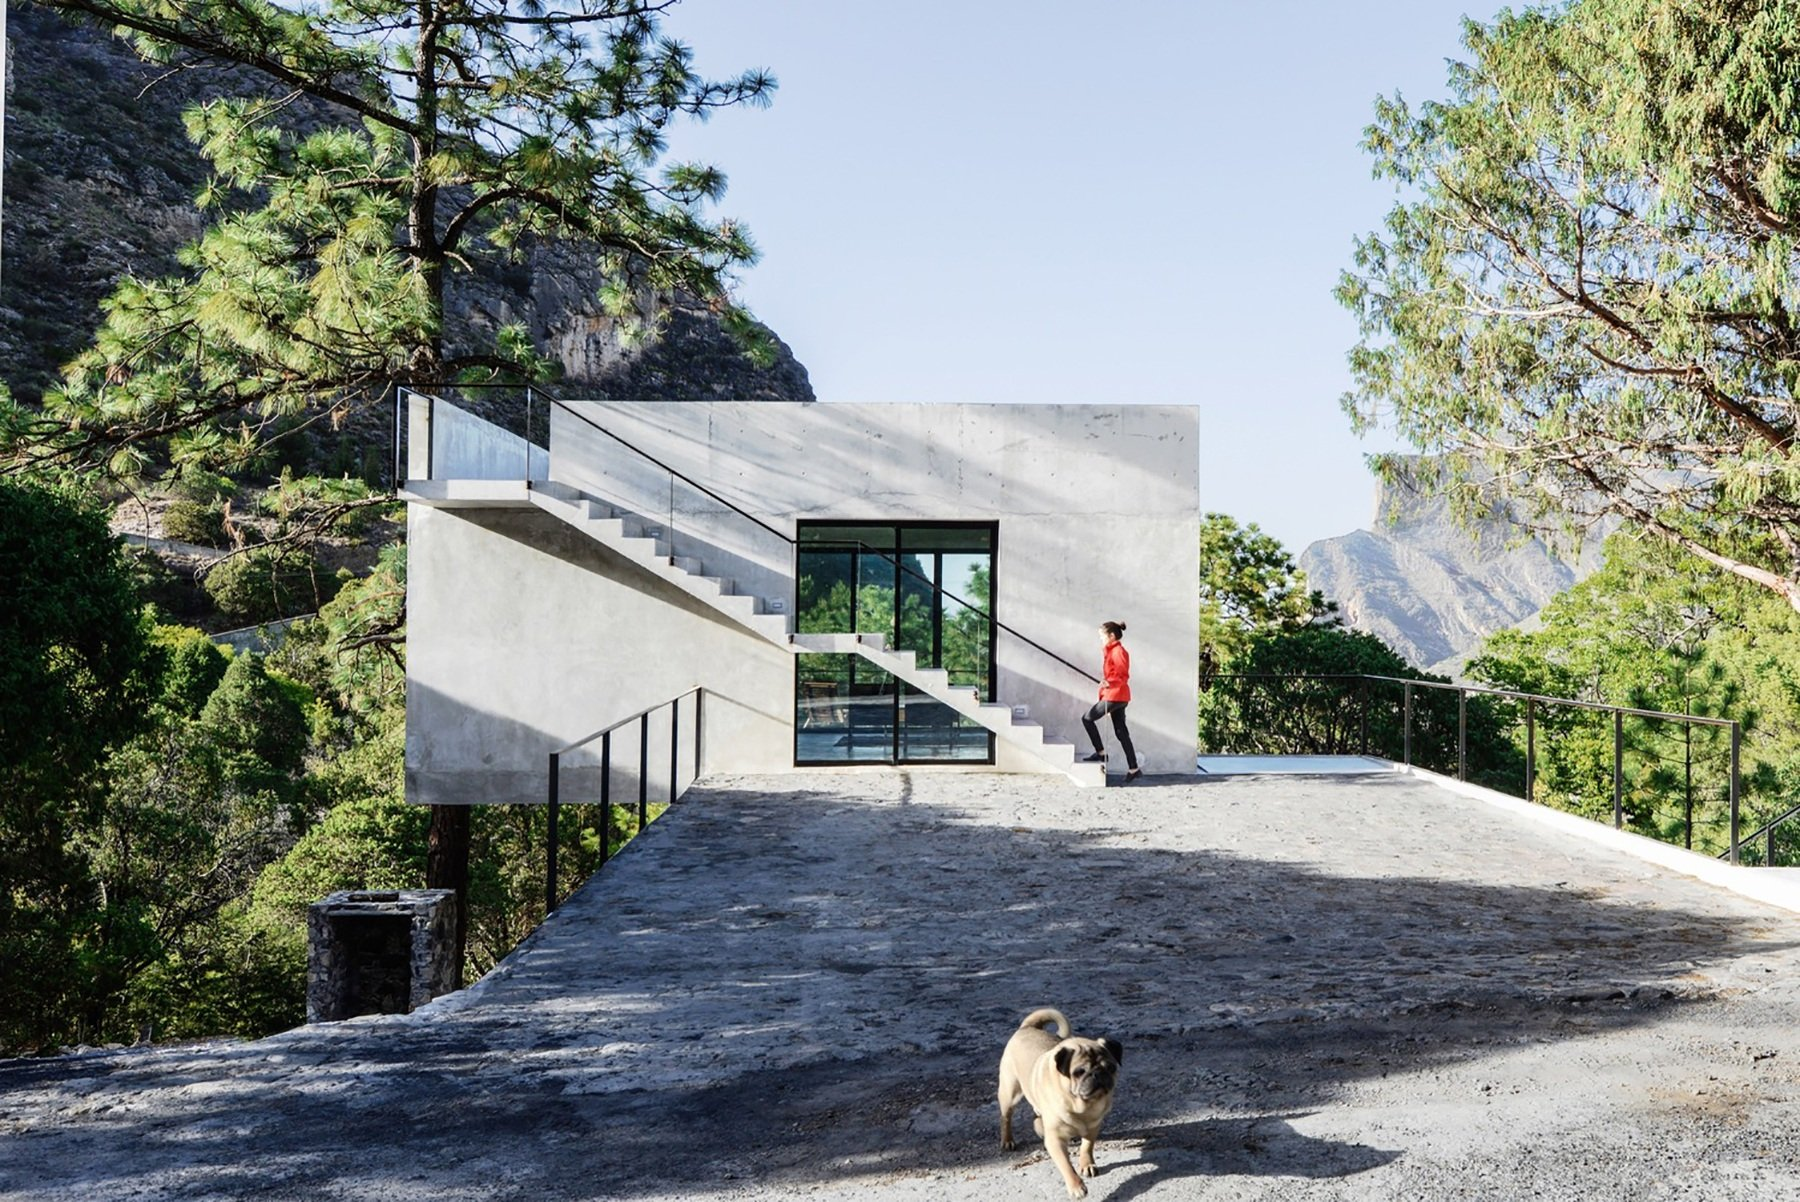 A Concrete Holiday Home In The Woodlands Of Mexico - IGNANT